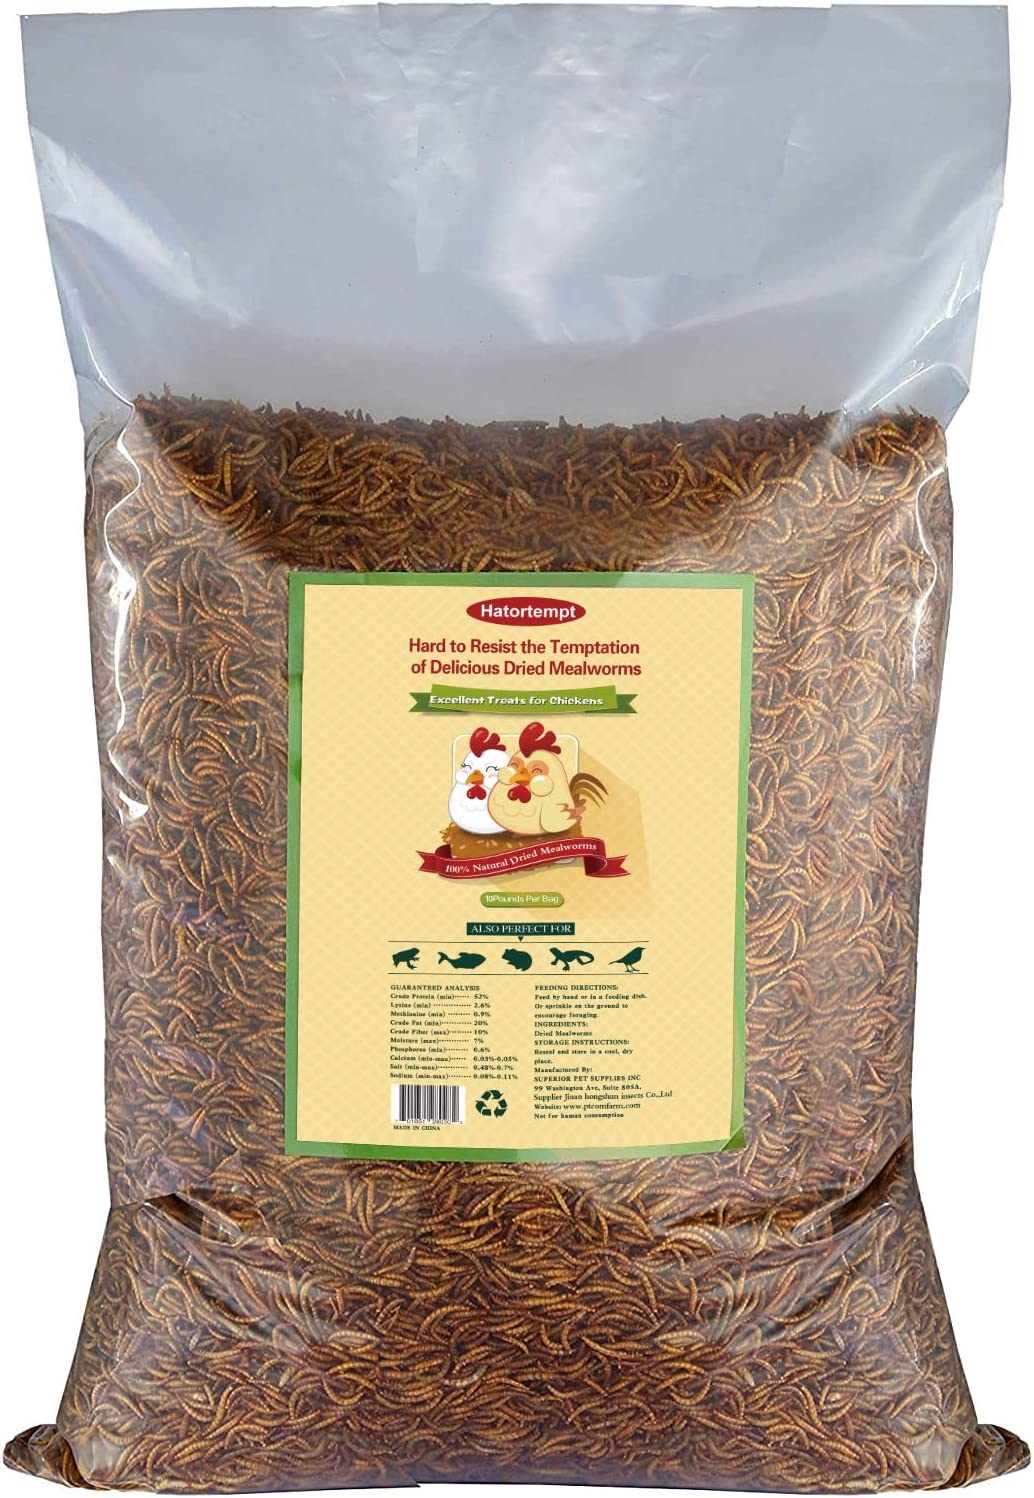 10lbs Bulk Non-GMO Dried Mealworms for Reptile, Tortoise ; Amphibian,Lizard ;Wild Birds; Chichens; Duck etc